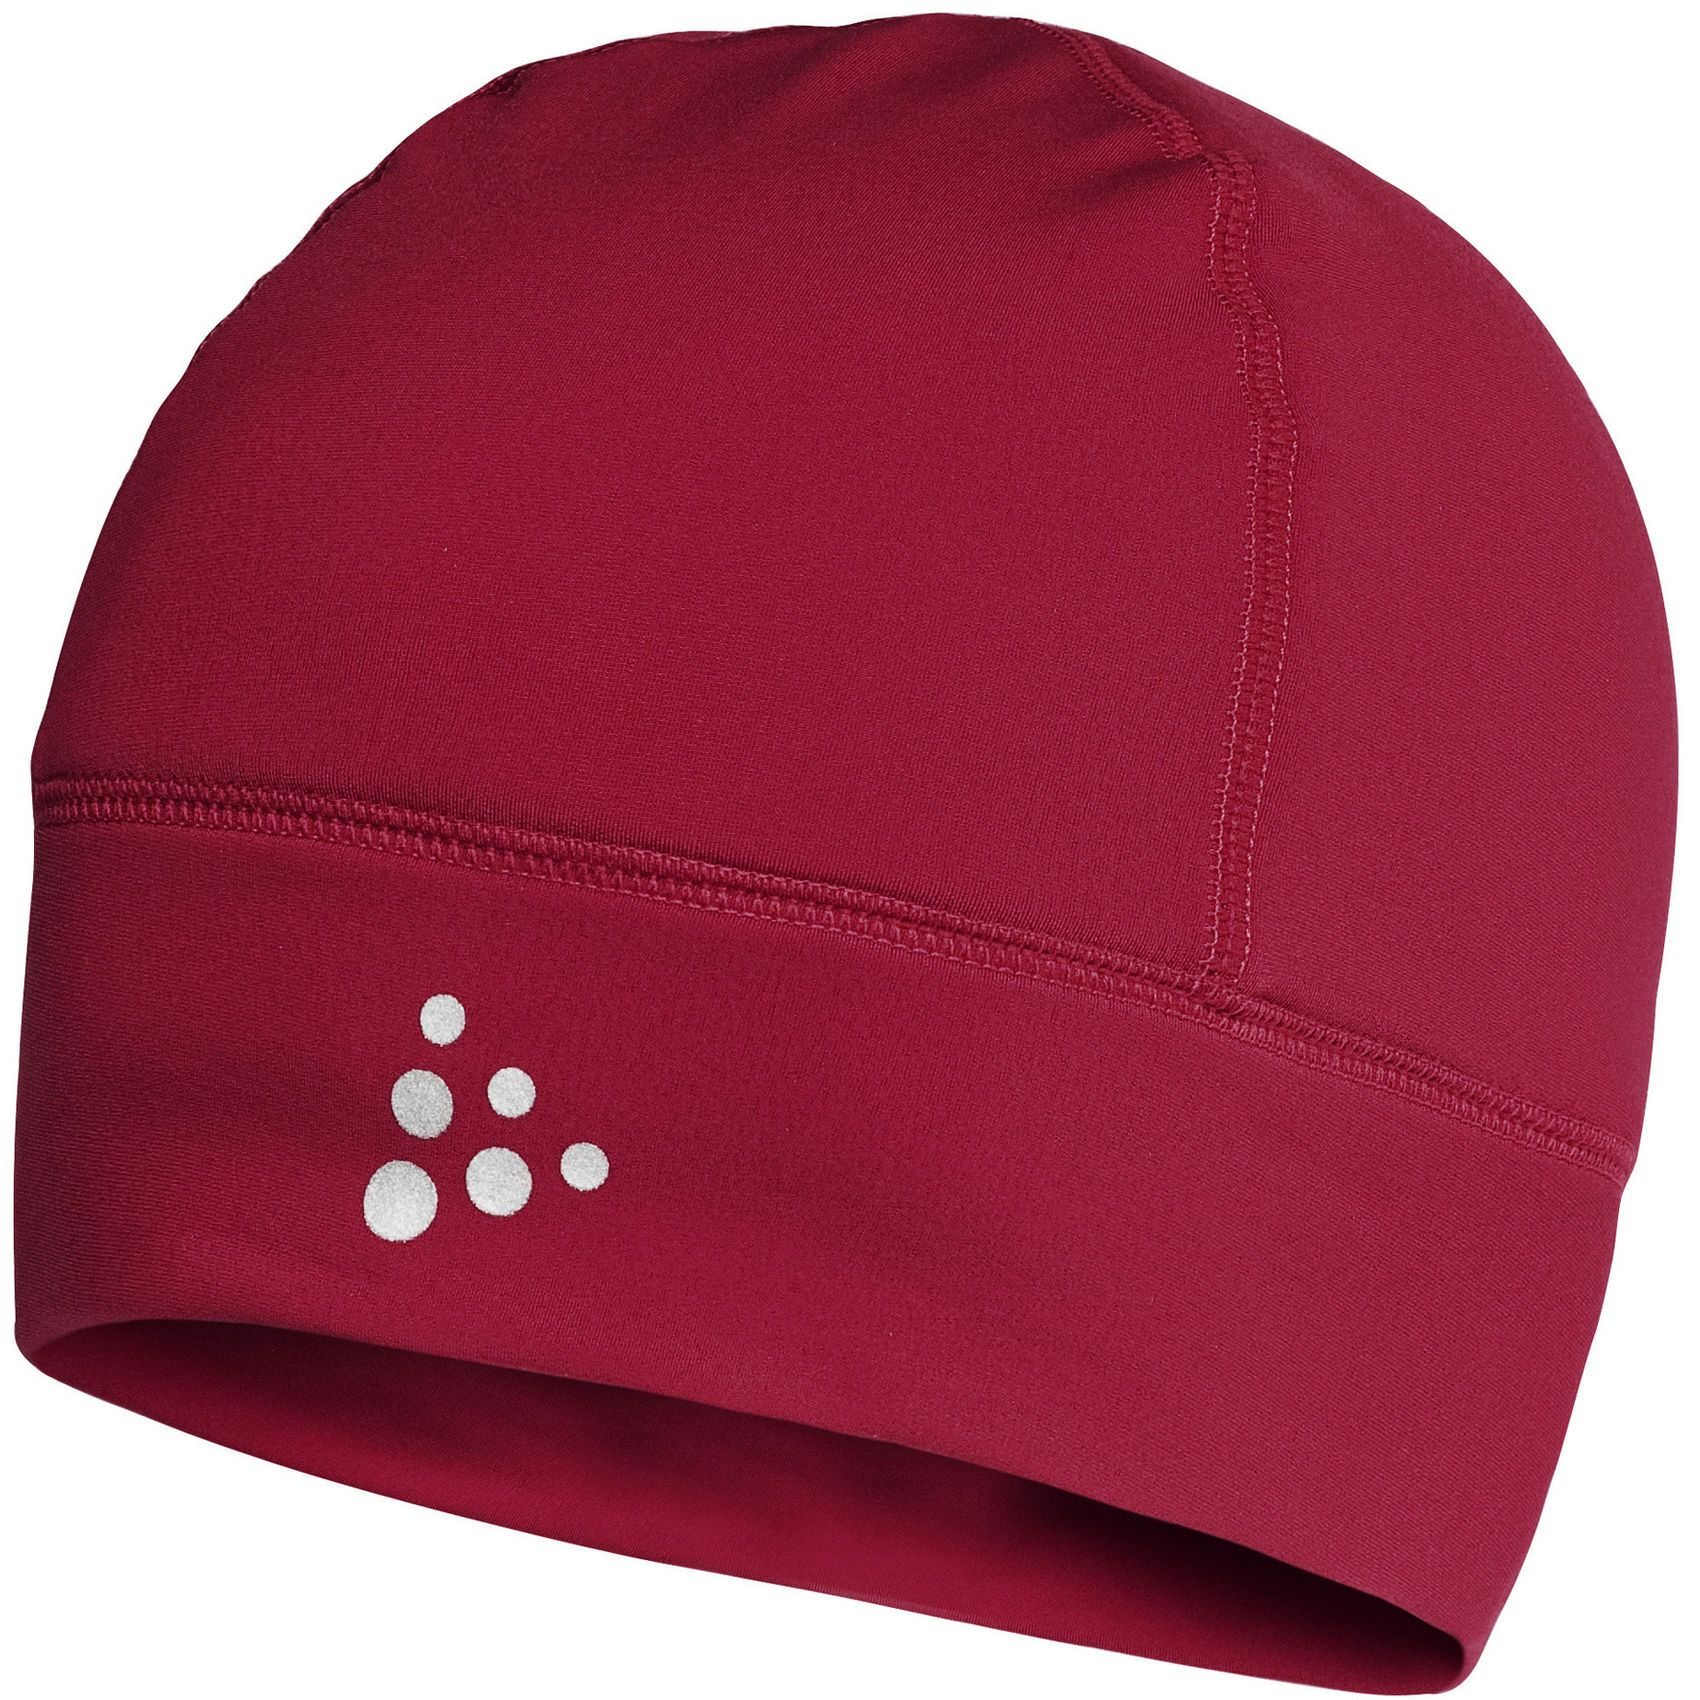 Craft Thermal Running Hat Rush Rose Womens Hat Womens   Browse Running  Shoes and Running Clothing from Brooks 84db9df755c